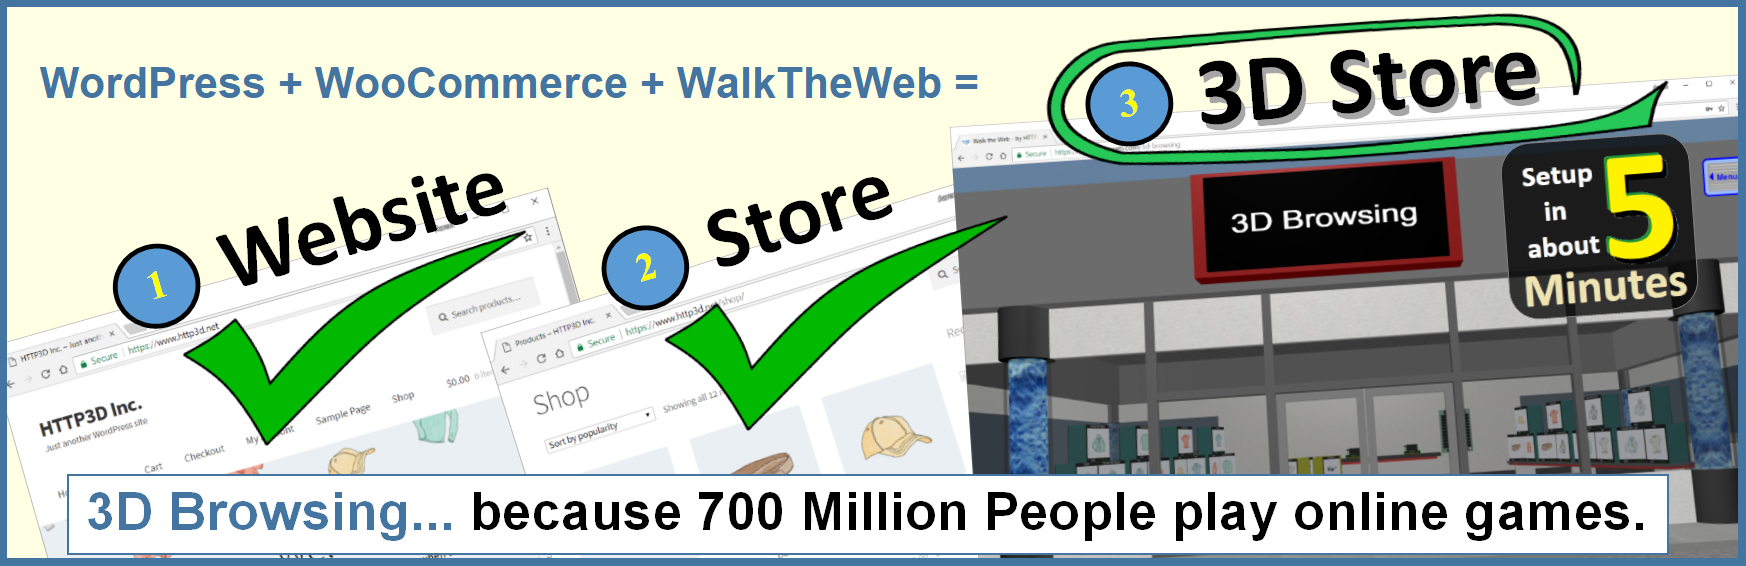 WalkTheWeb 3D Store